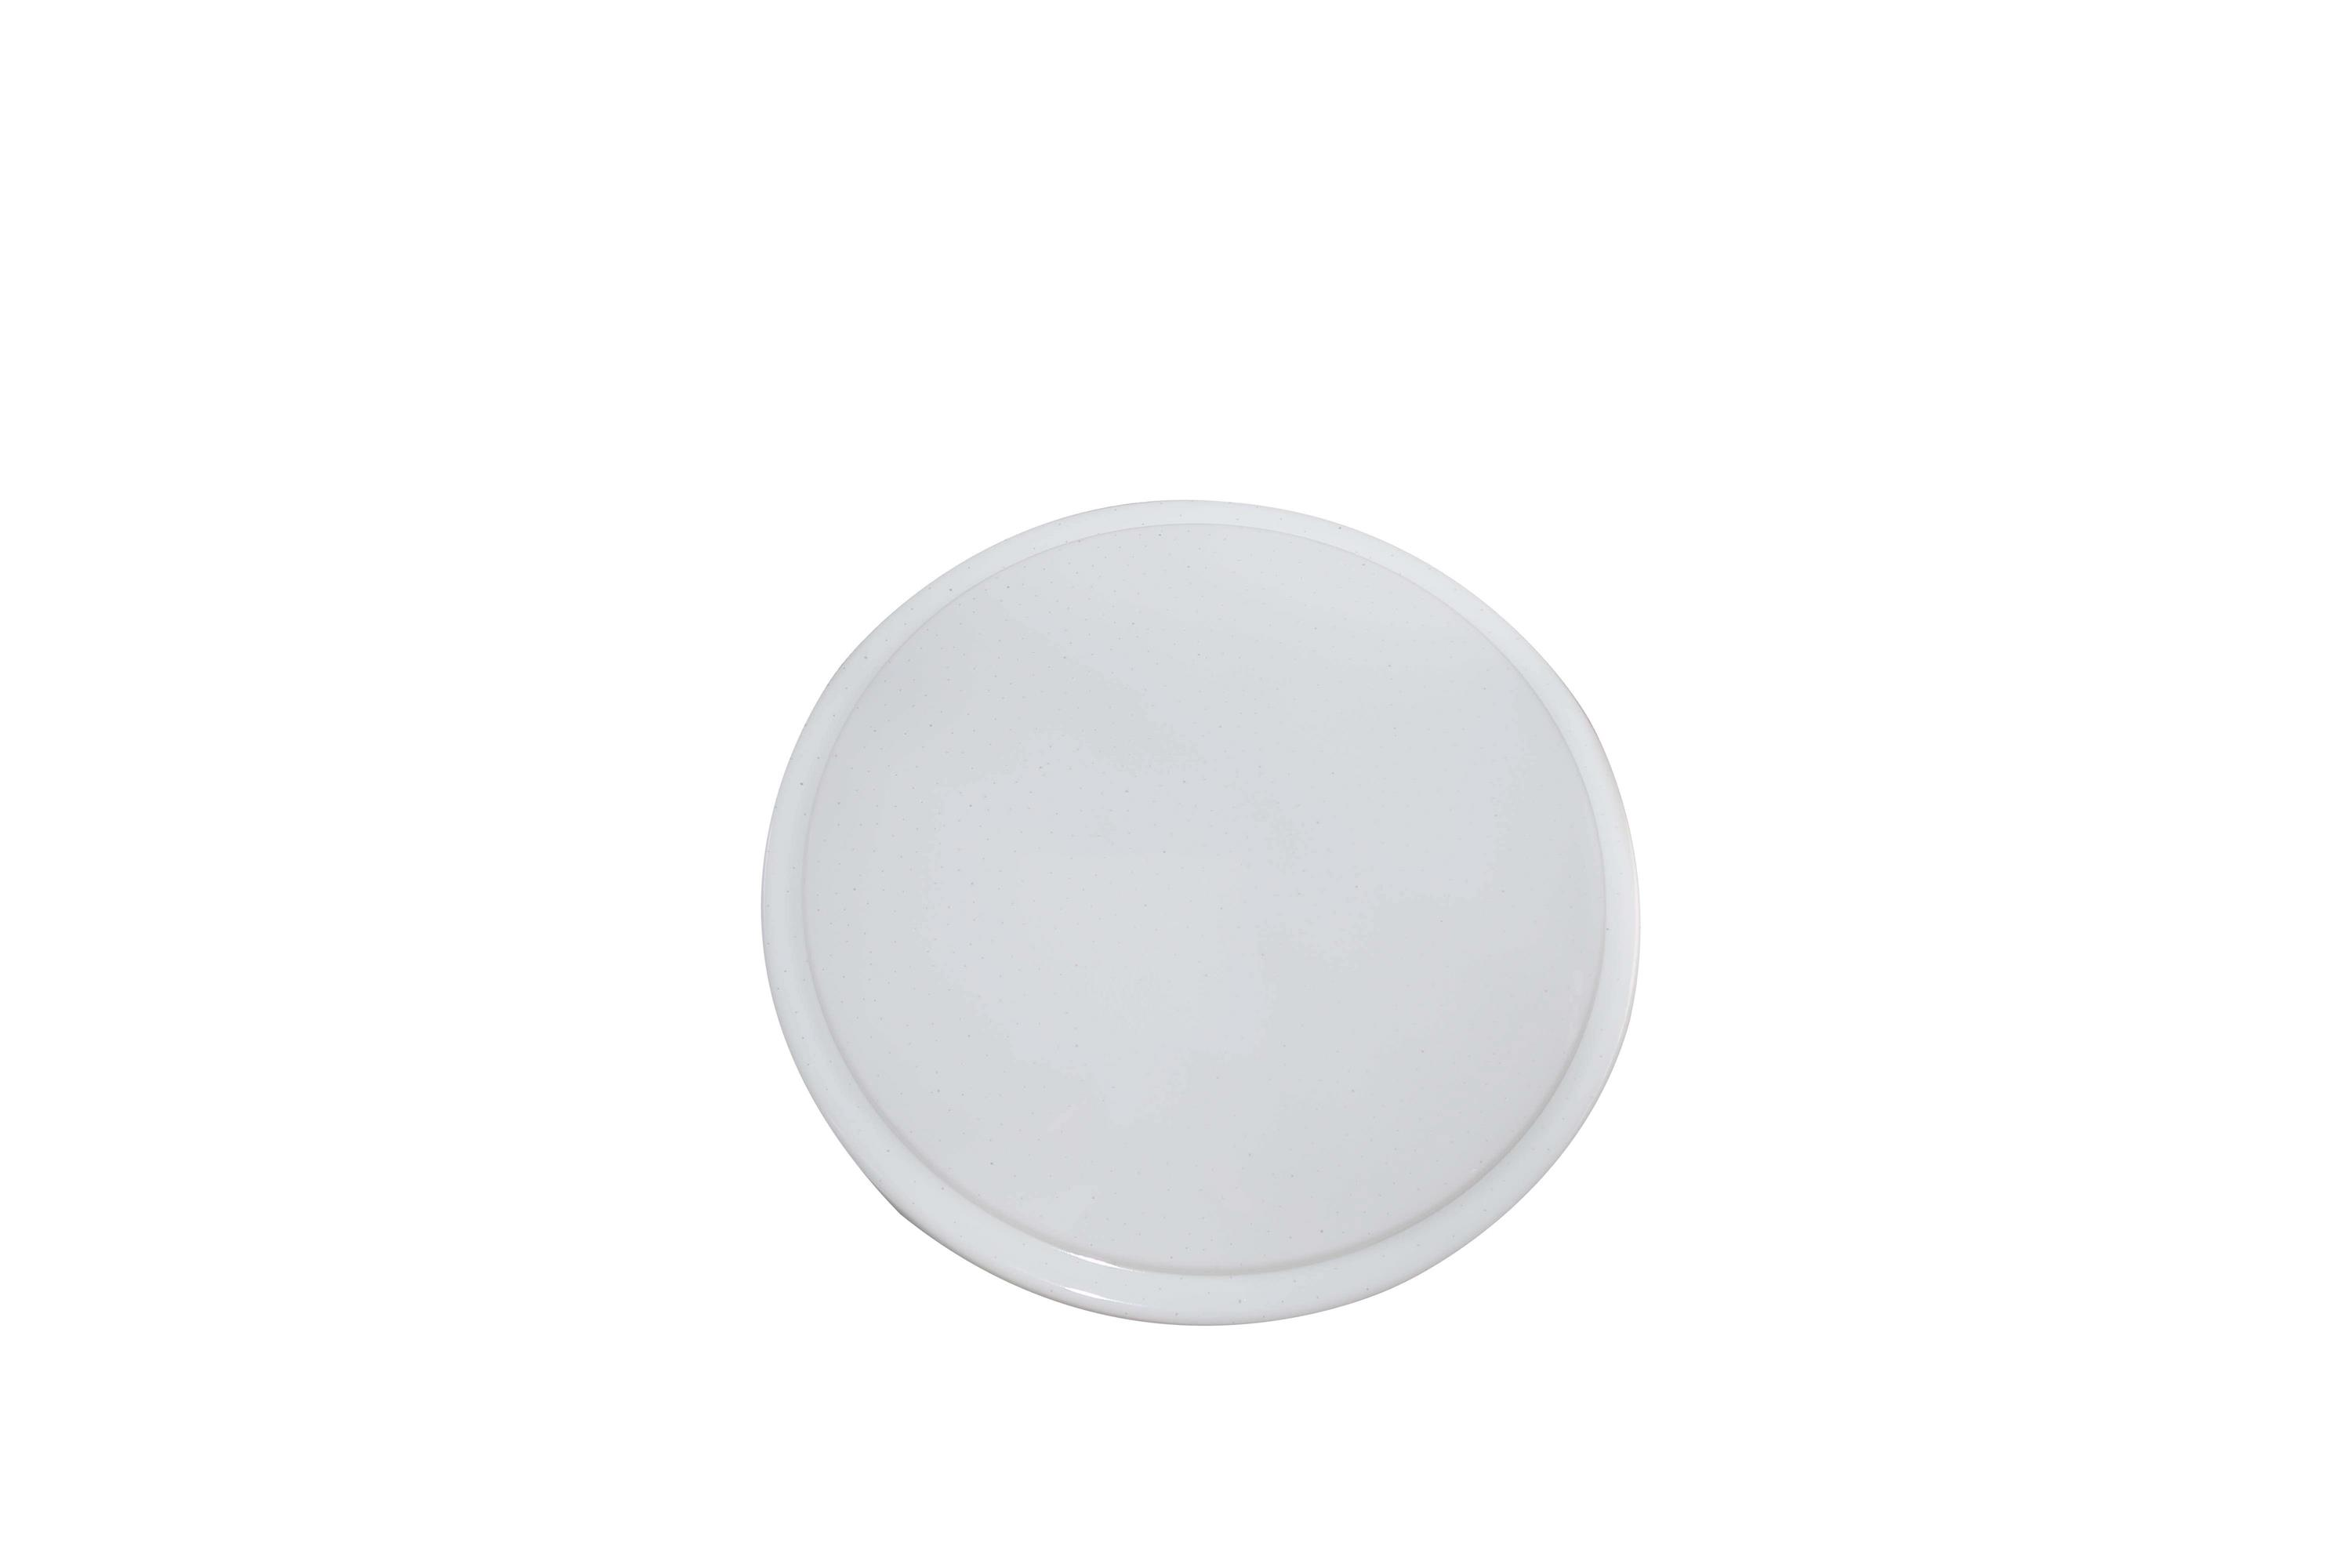 48W POLAR LED Ceiling Light (Plain Circle) Daylight